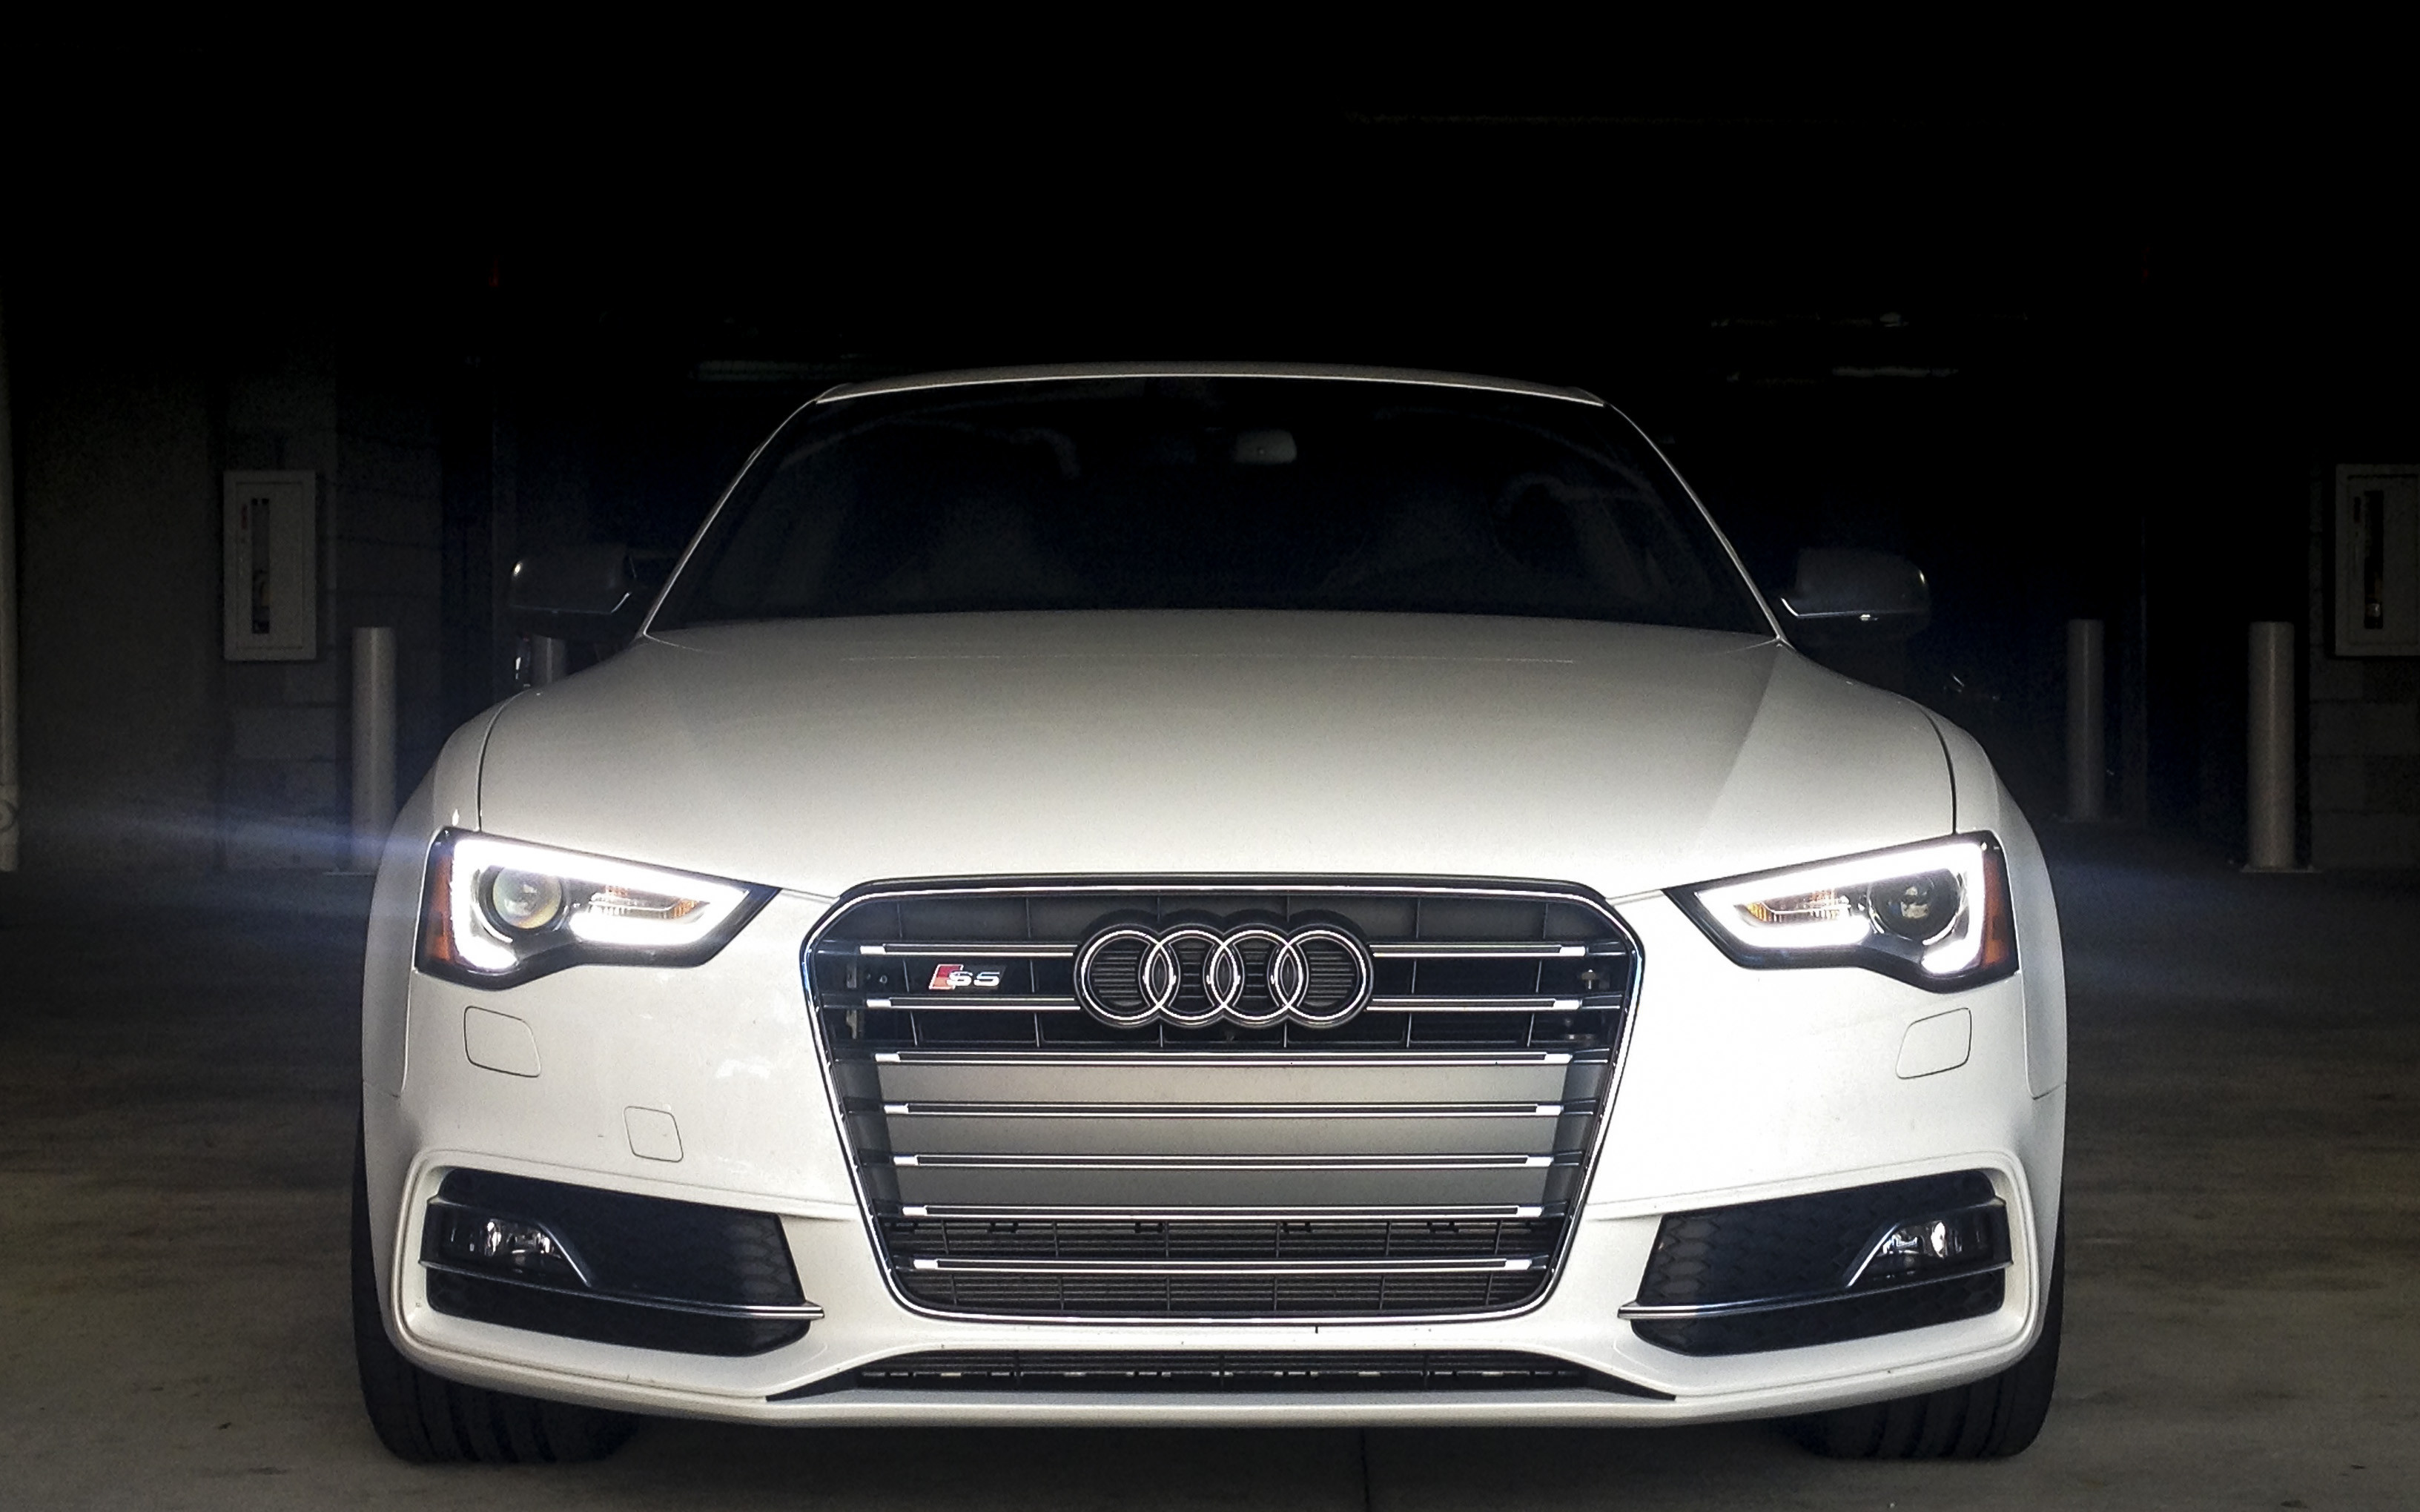 Res: 3264x2040, Audi S5 Wallpaper - Took it today with my phone and touched it up in  Photoshop. Happy with the result!